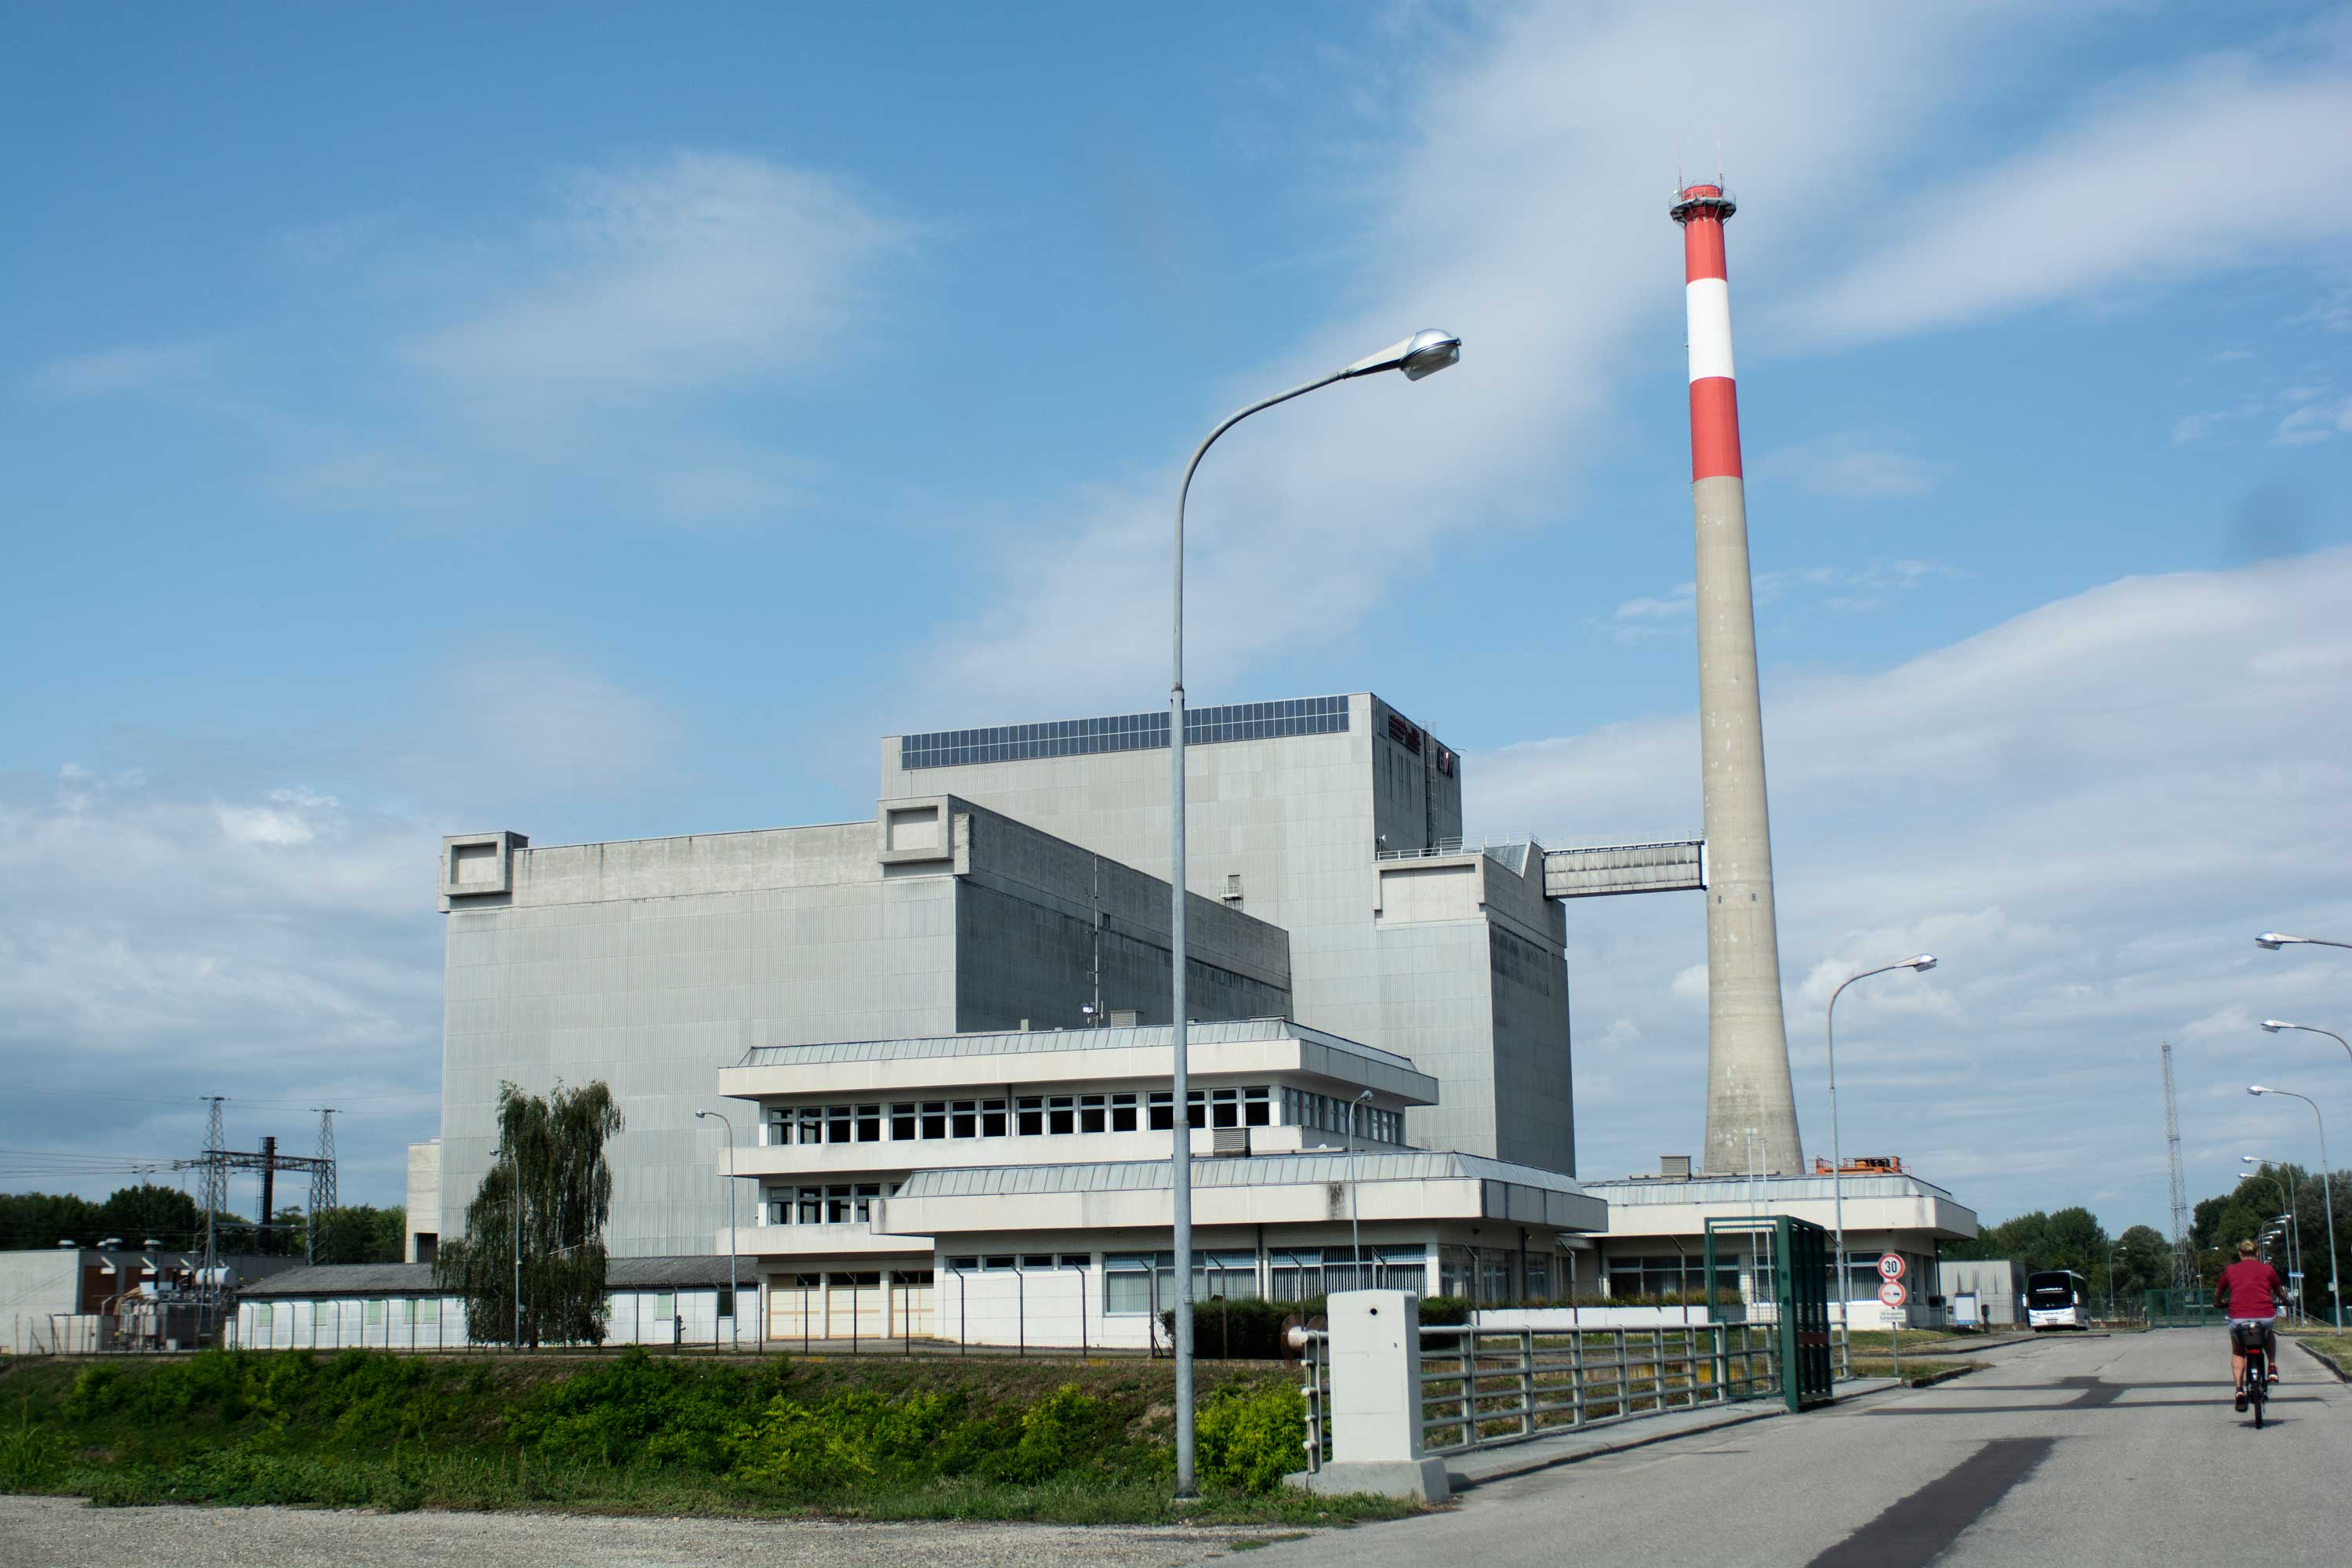 Defunct nuclear power plant